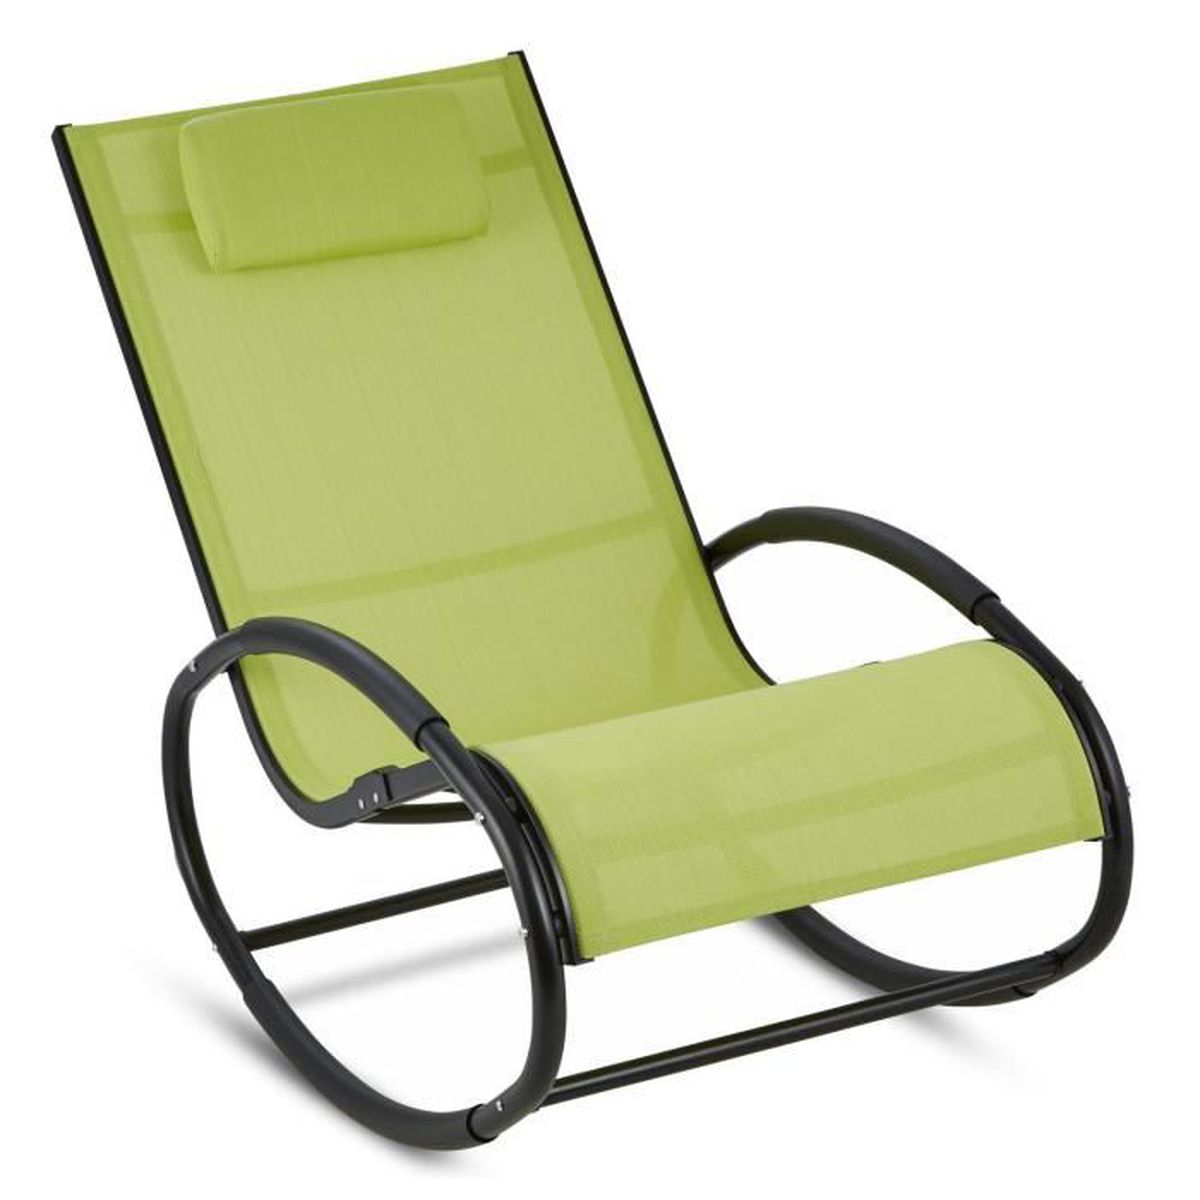 blumfeldt retiro fauteuil bascule rocking chair aluminium polyester vert achat vente. Black Bedroom Furniture Sets. Home Design Ideas